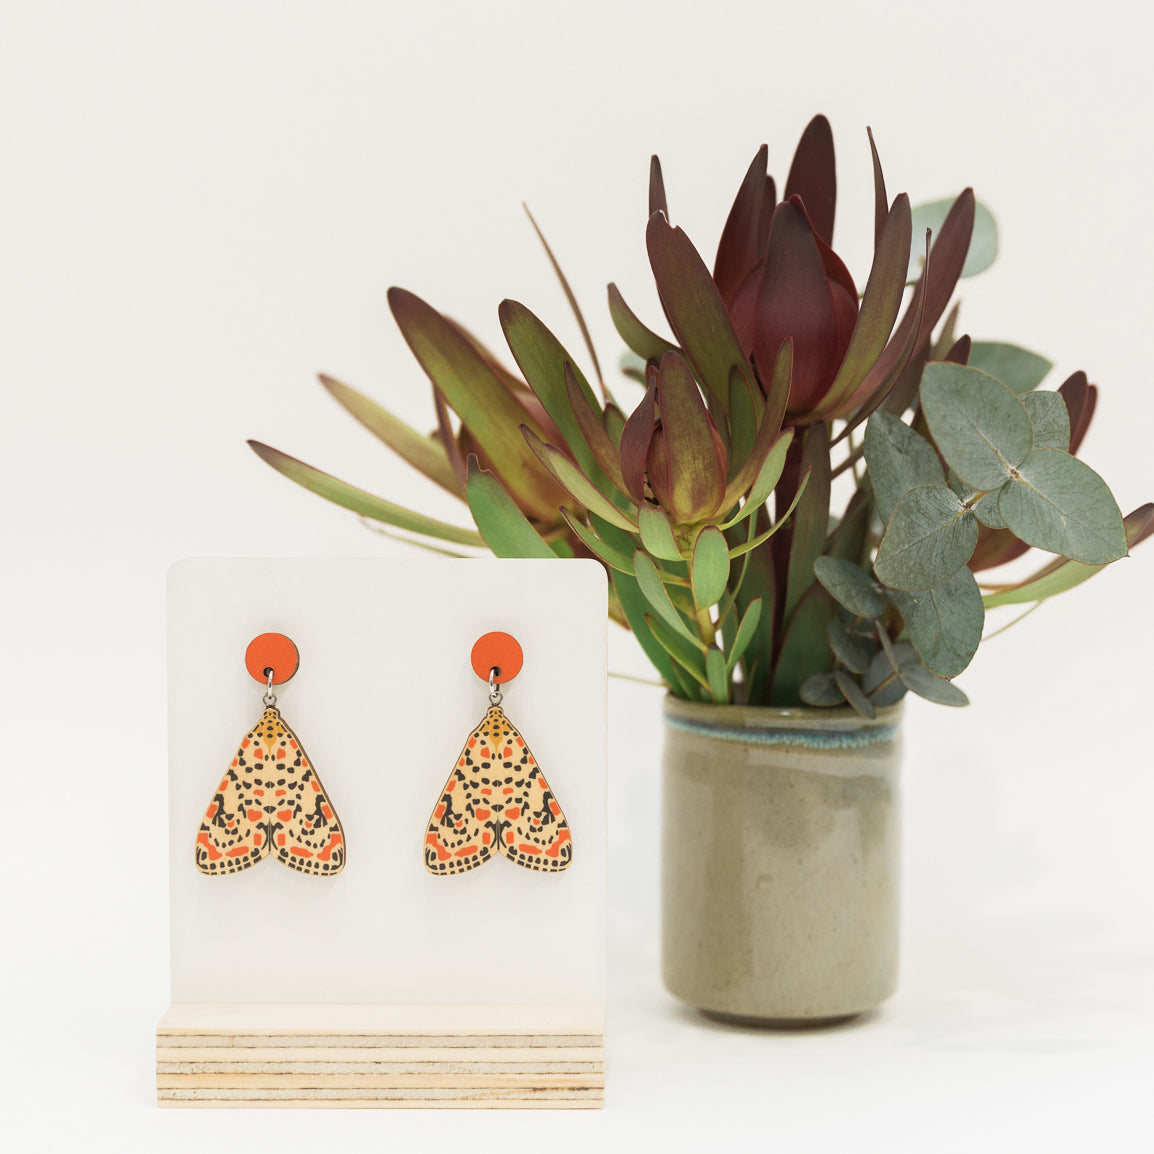 Utetheisa pulchelloides red spotted Australian made moth earrings wooden jewellery